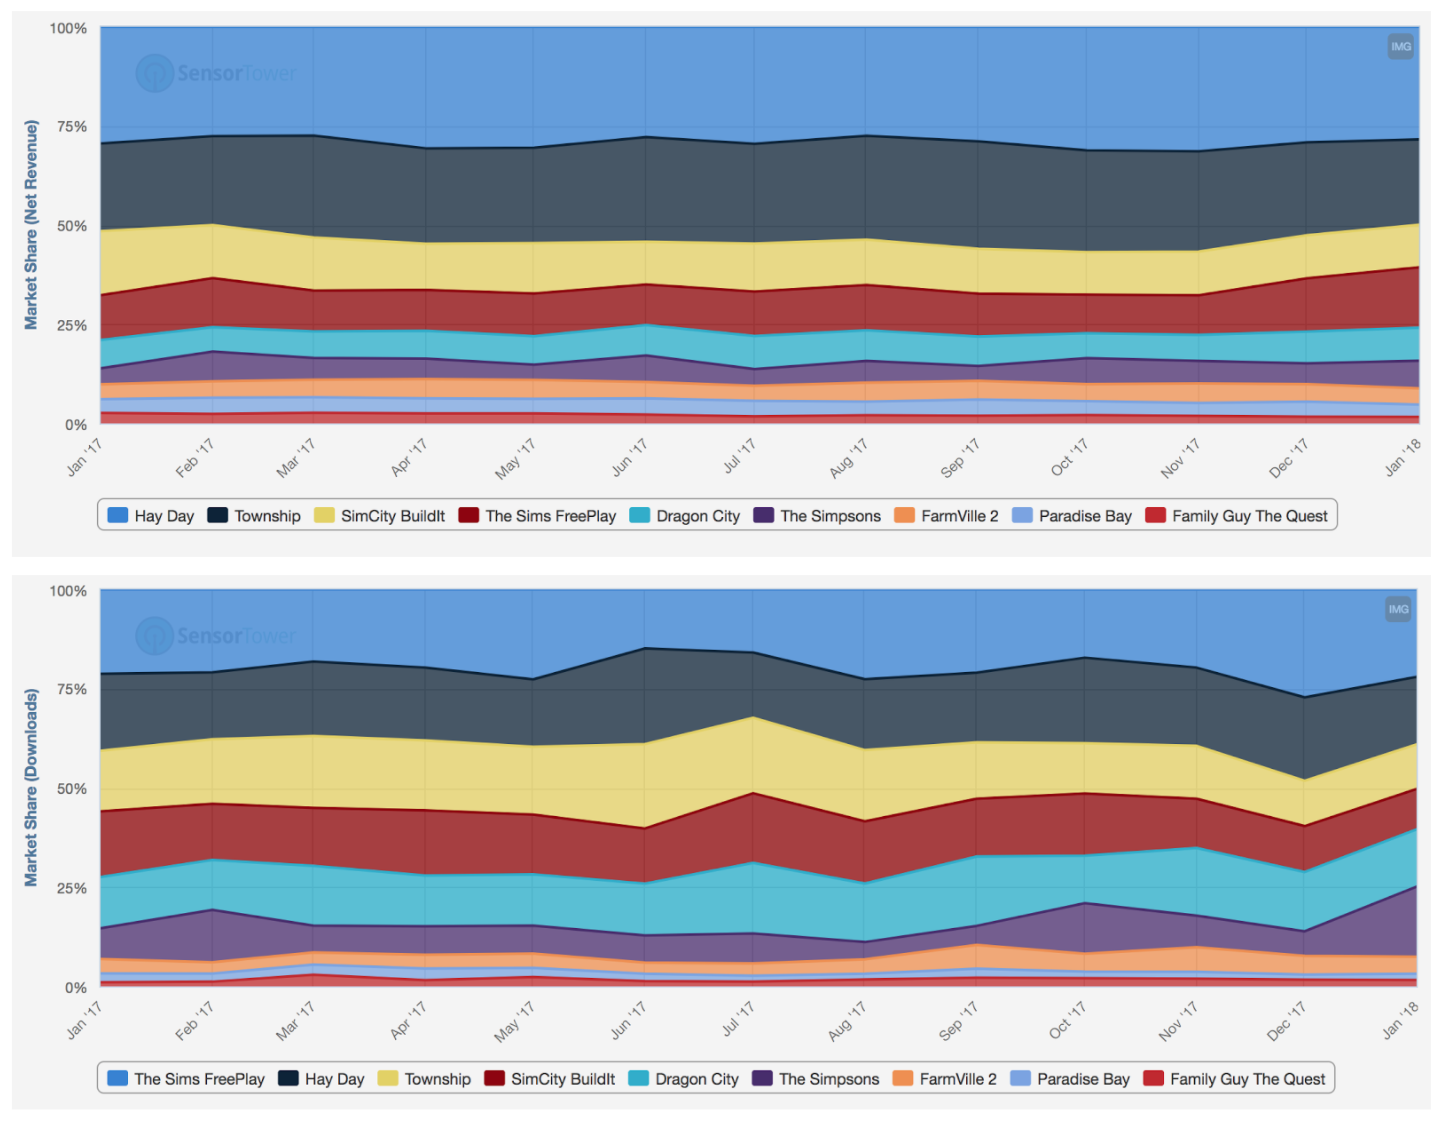 For last three years, the market share has been pretty much the same with Hay Day, Township, Sims, and SimCity